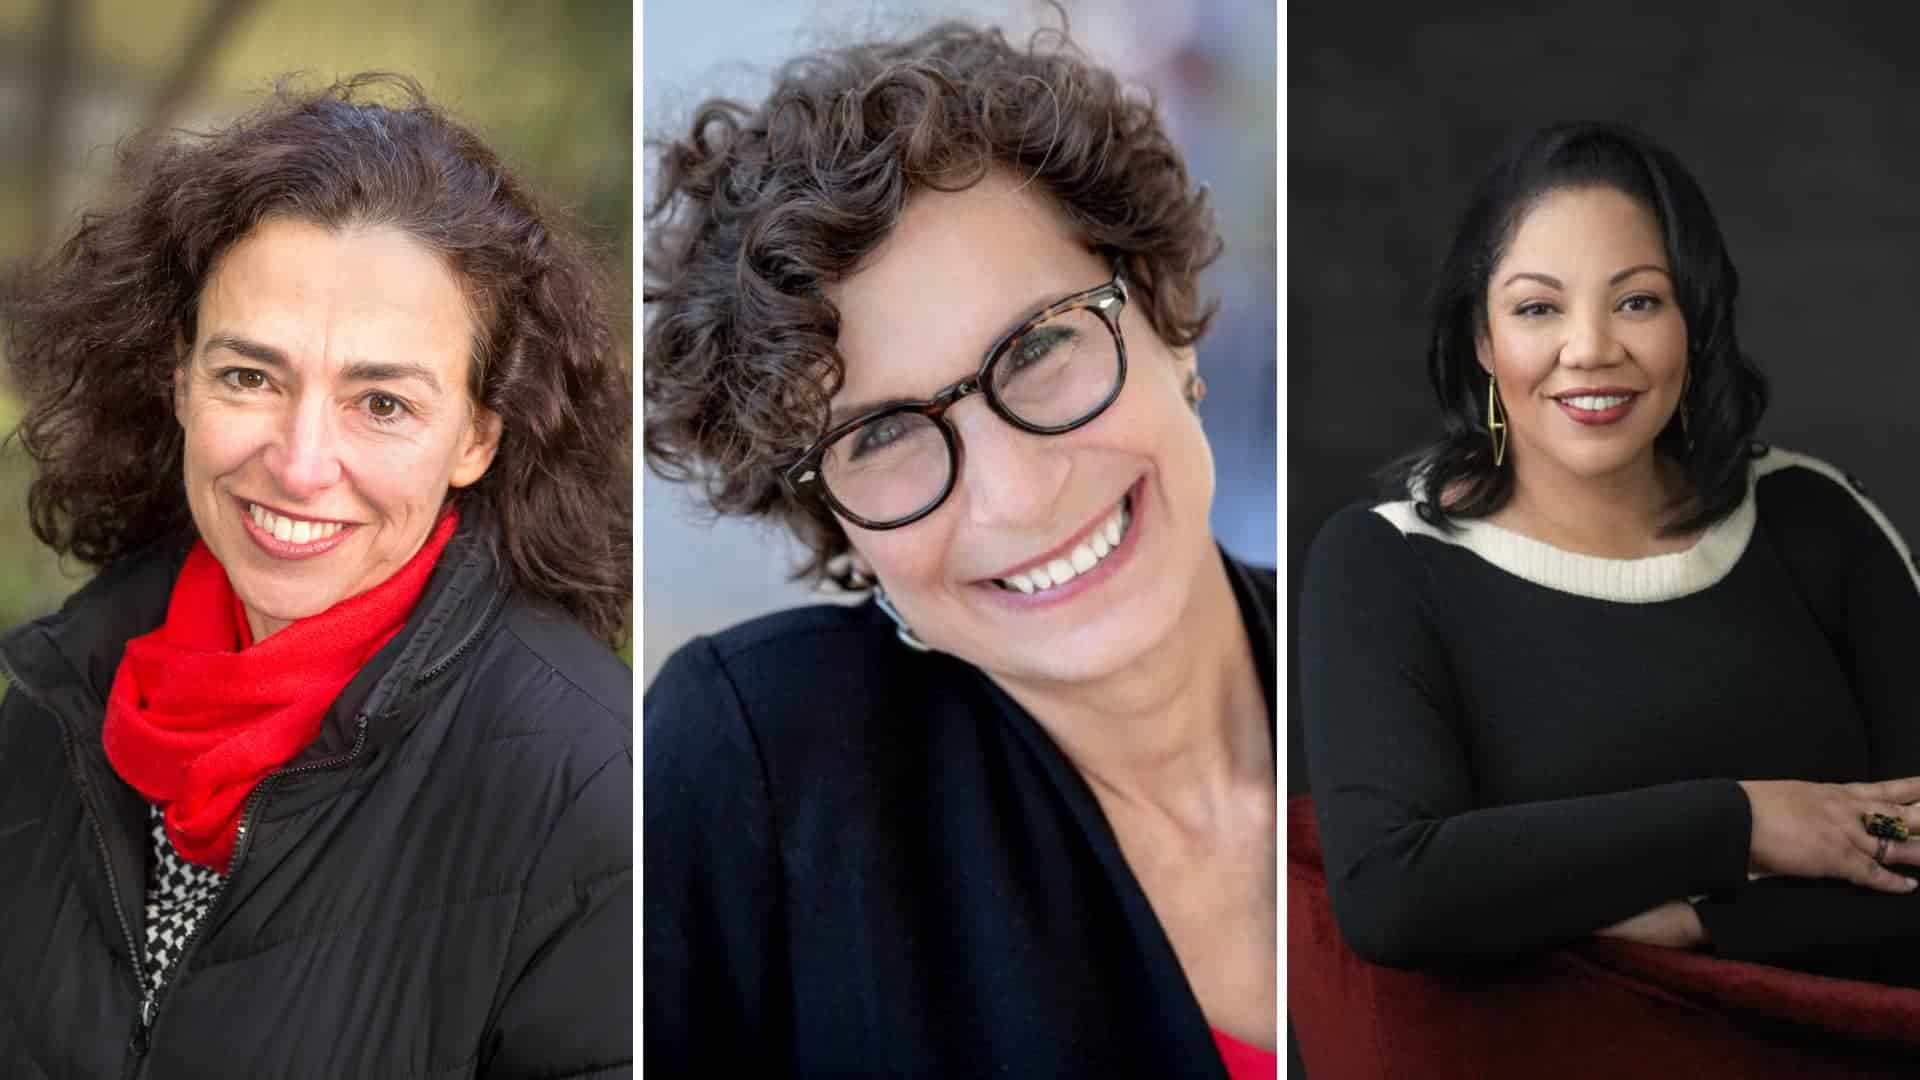 5 inspiring female leaders in the medicinal cannabis industry